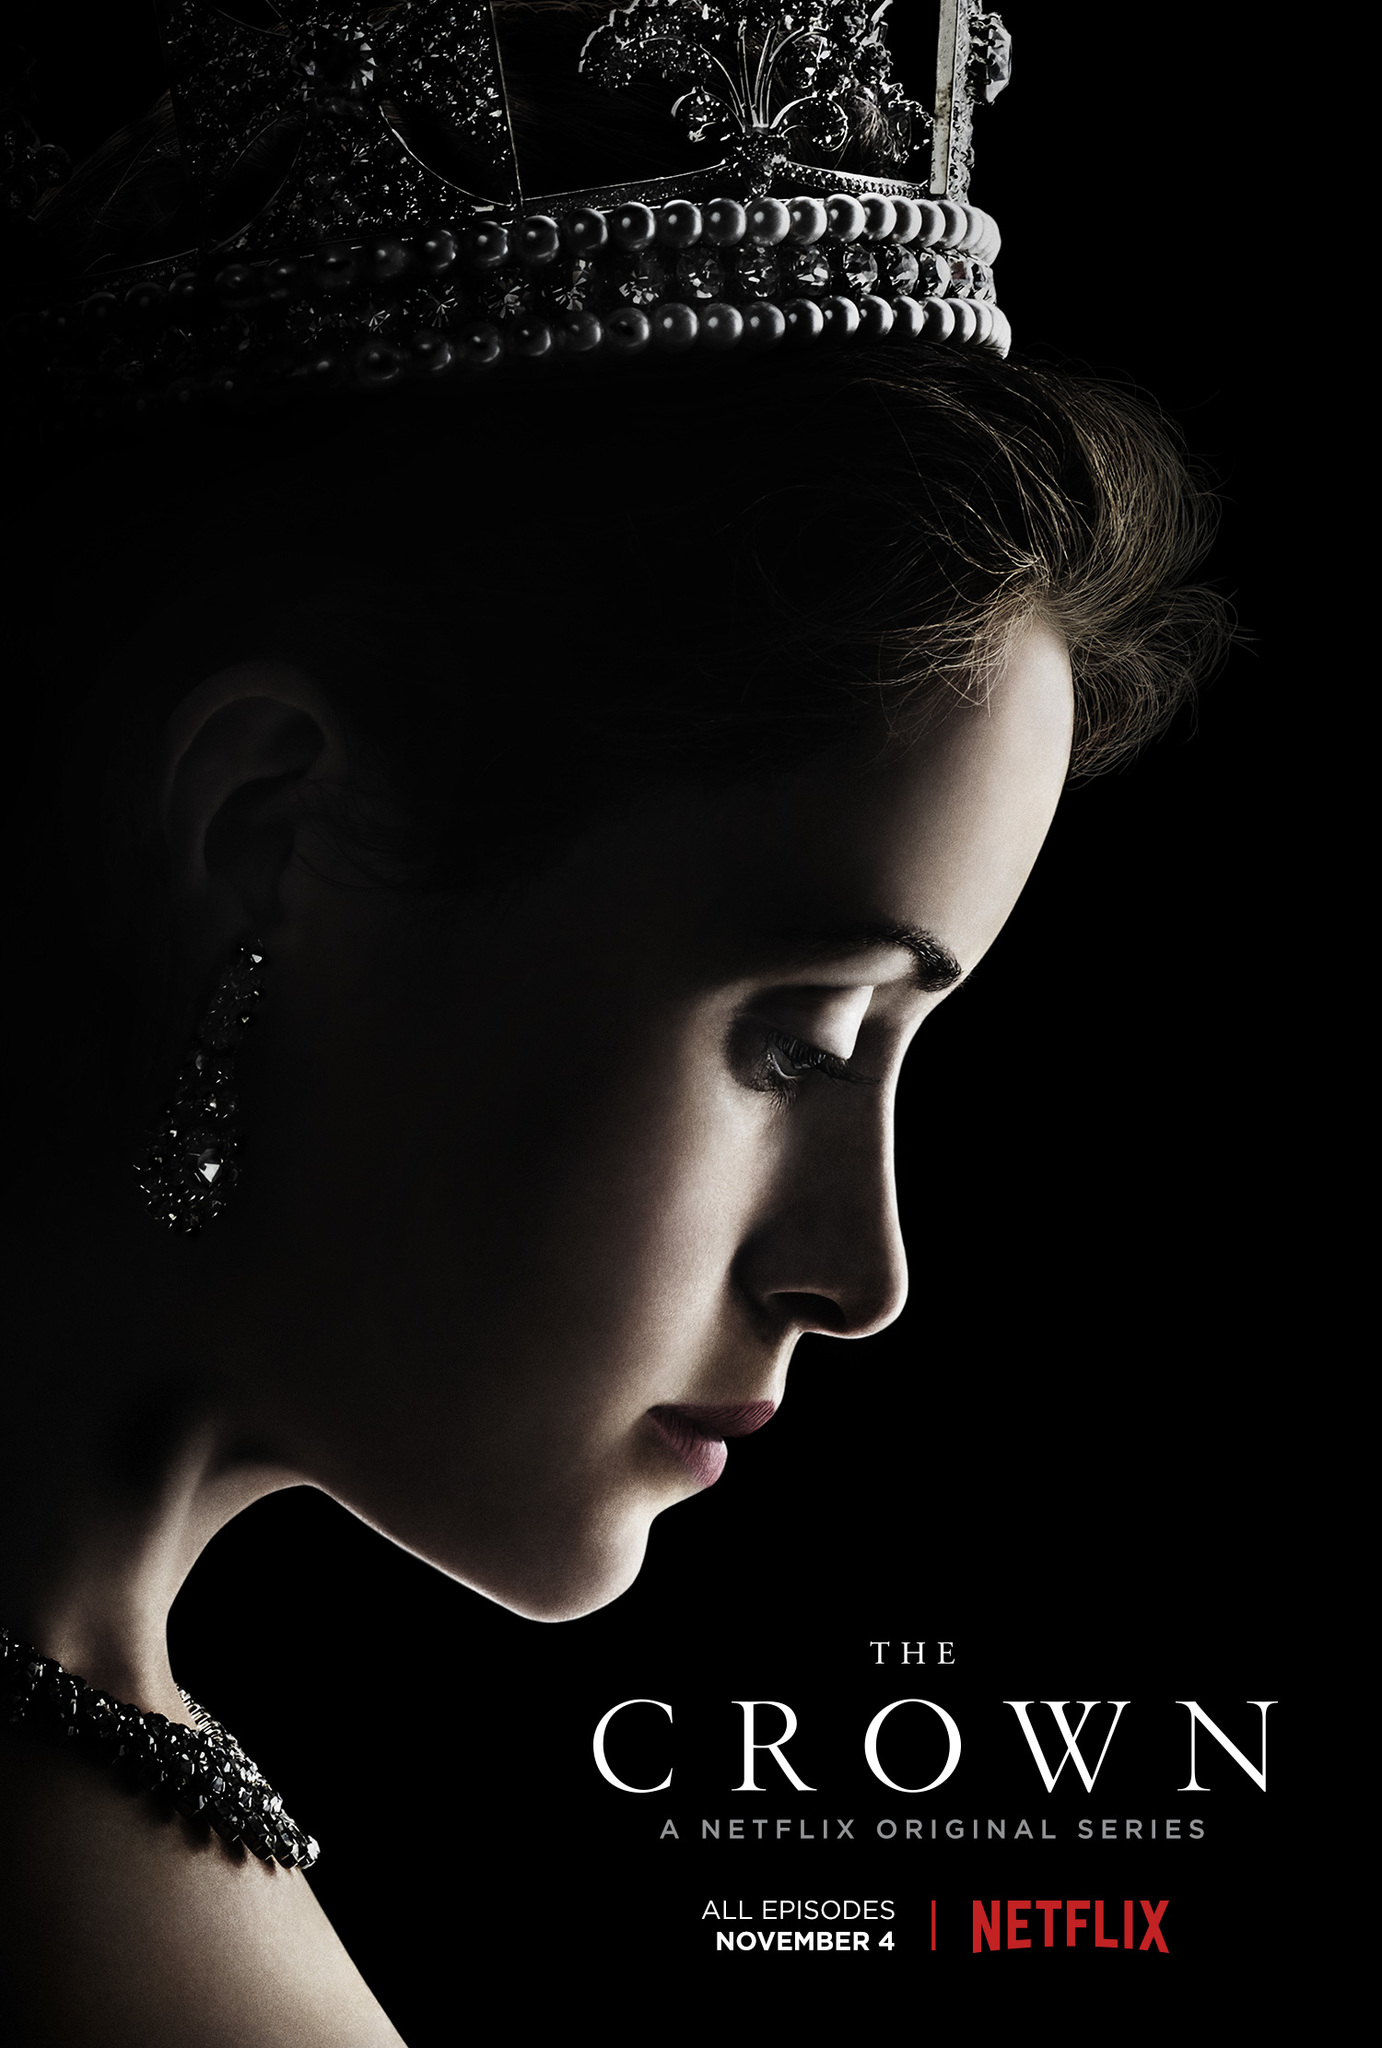 The Crown S01 EP09 Hindi Dubbed